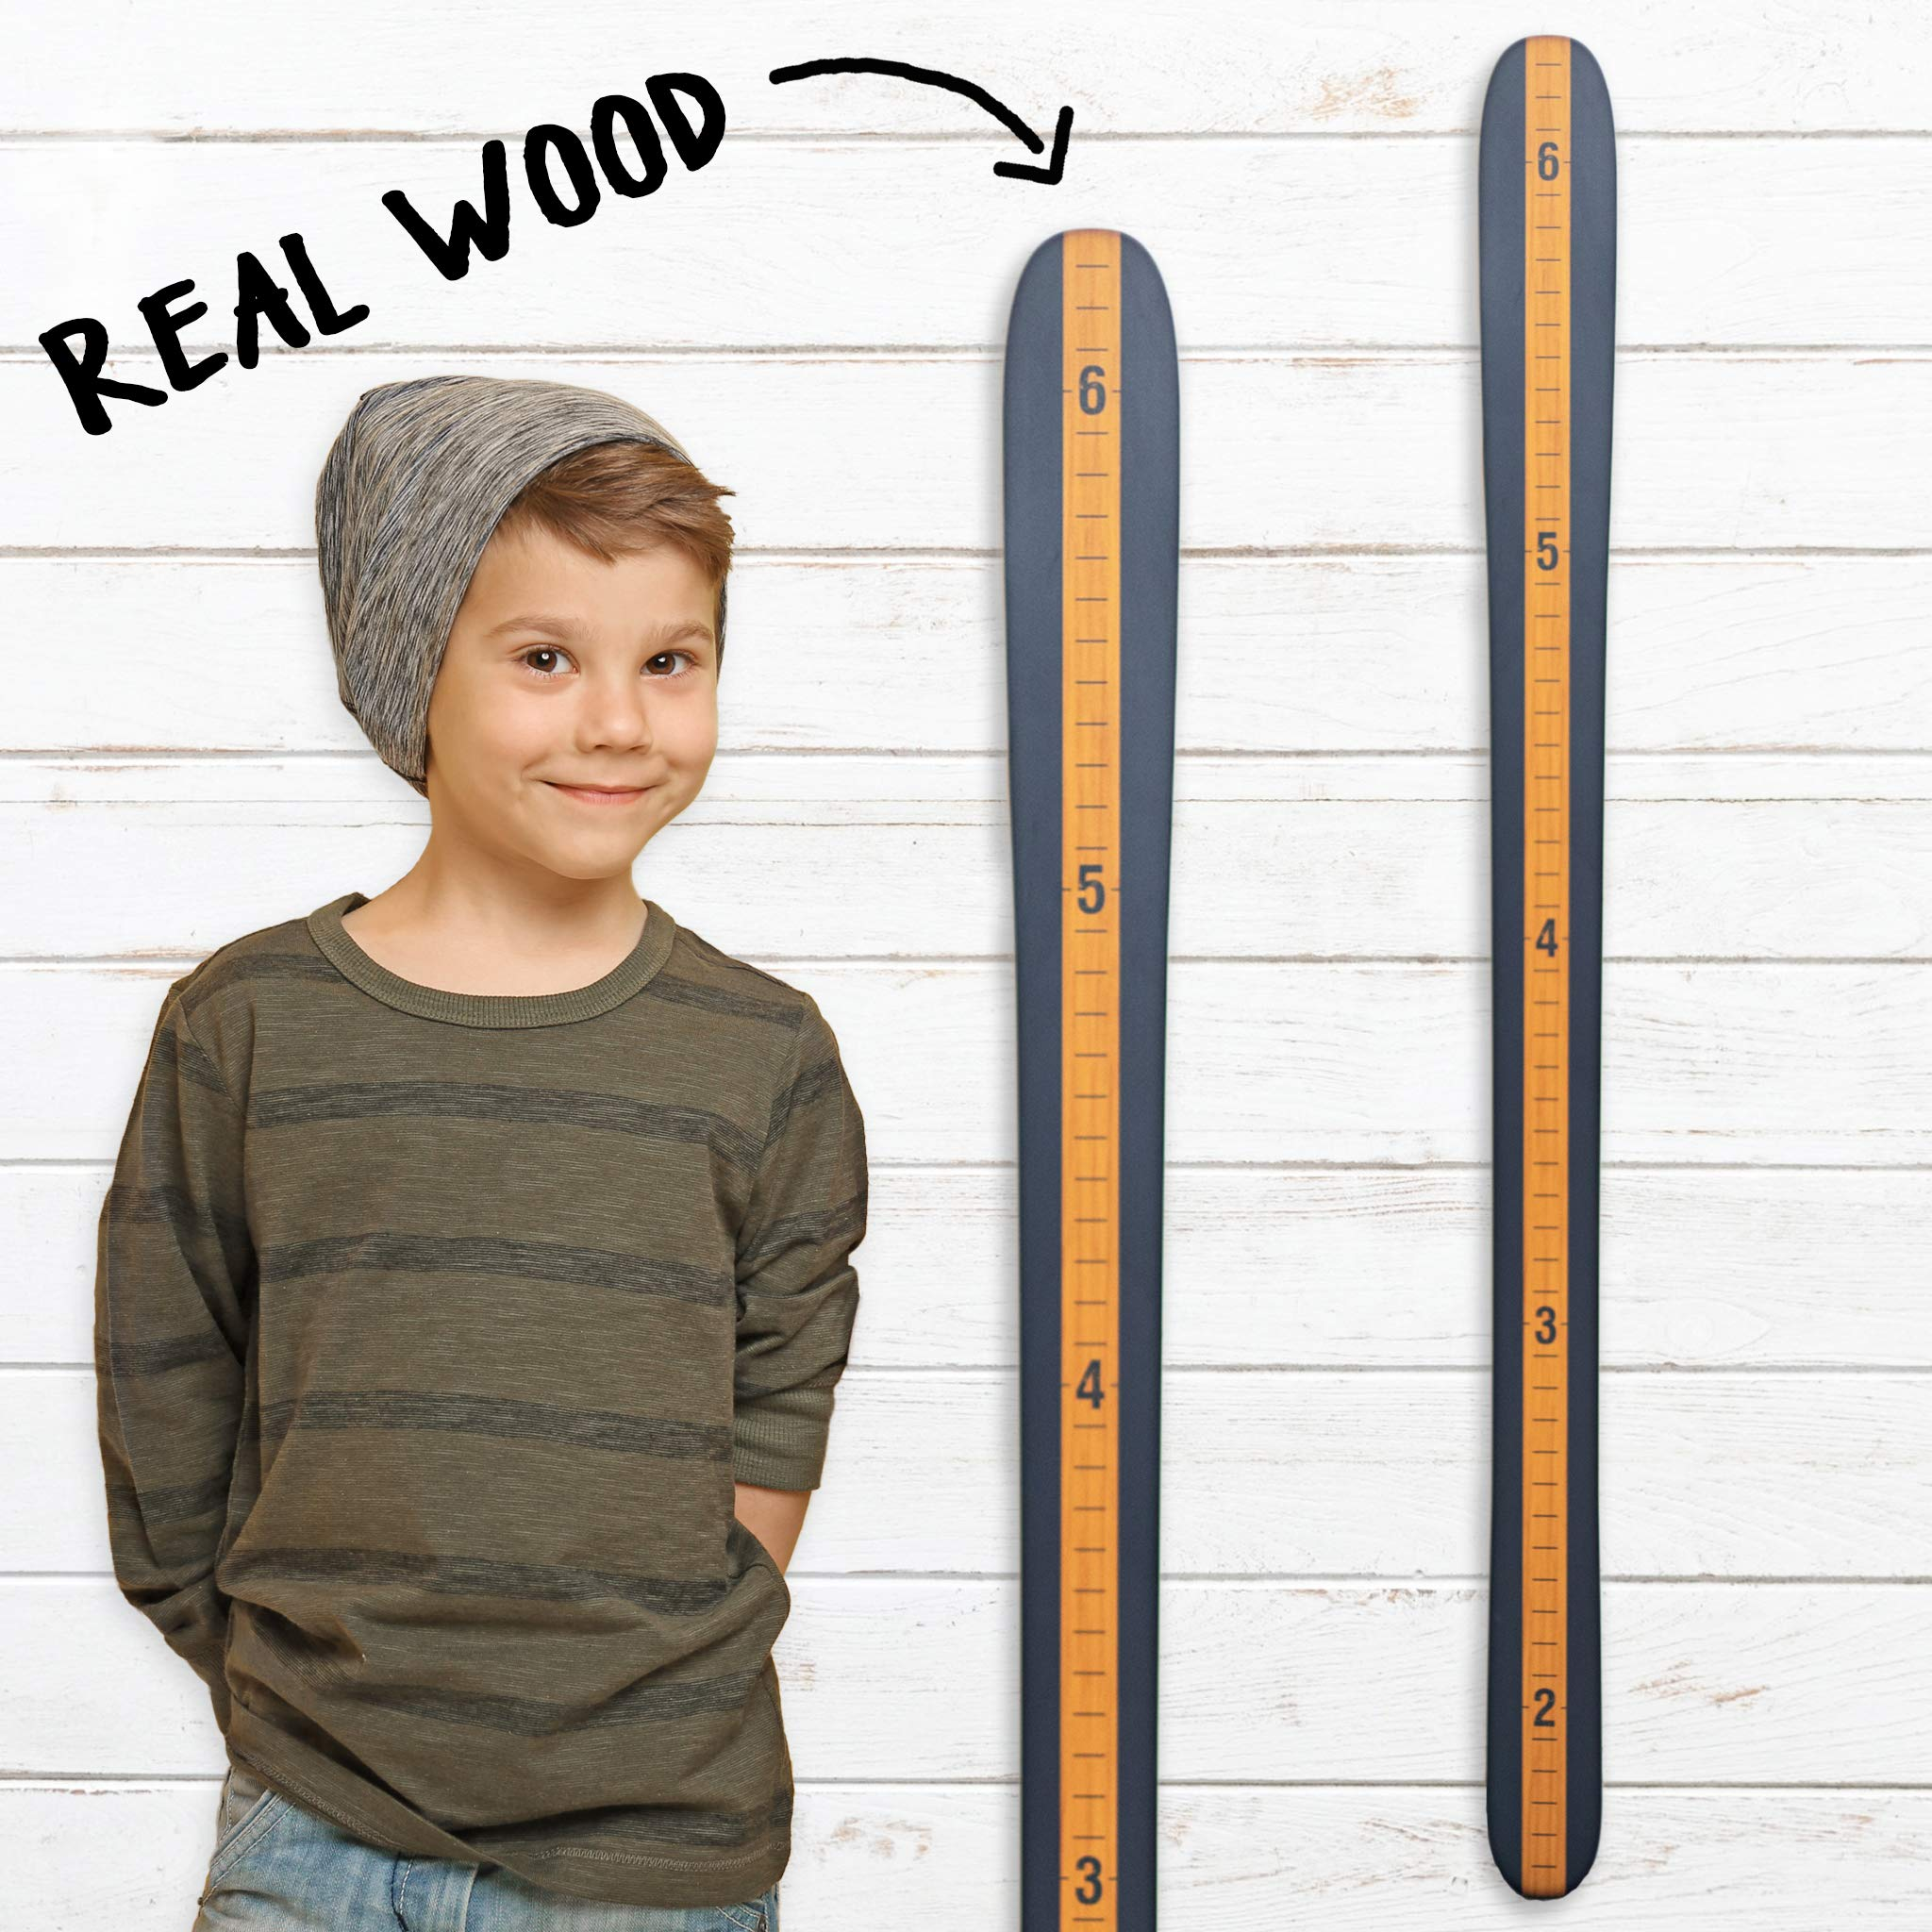 Growth Chart Art | Modern Vintage | Wooden Ski Growth Chart | Baby Skis | Ski Gifts | Wall Hanging Wood Height Chart for Measuring Kids, Children, Boys, Girl | Vintage Blue by Growth Chart Art